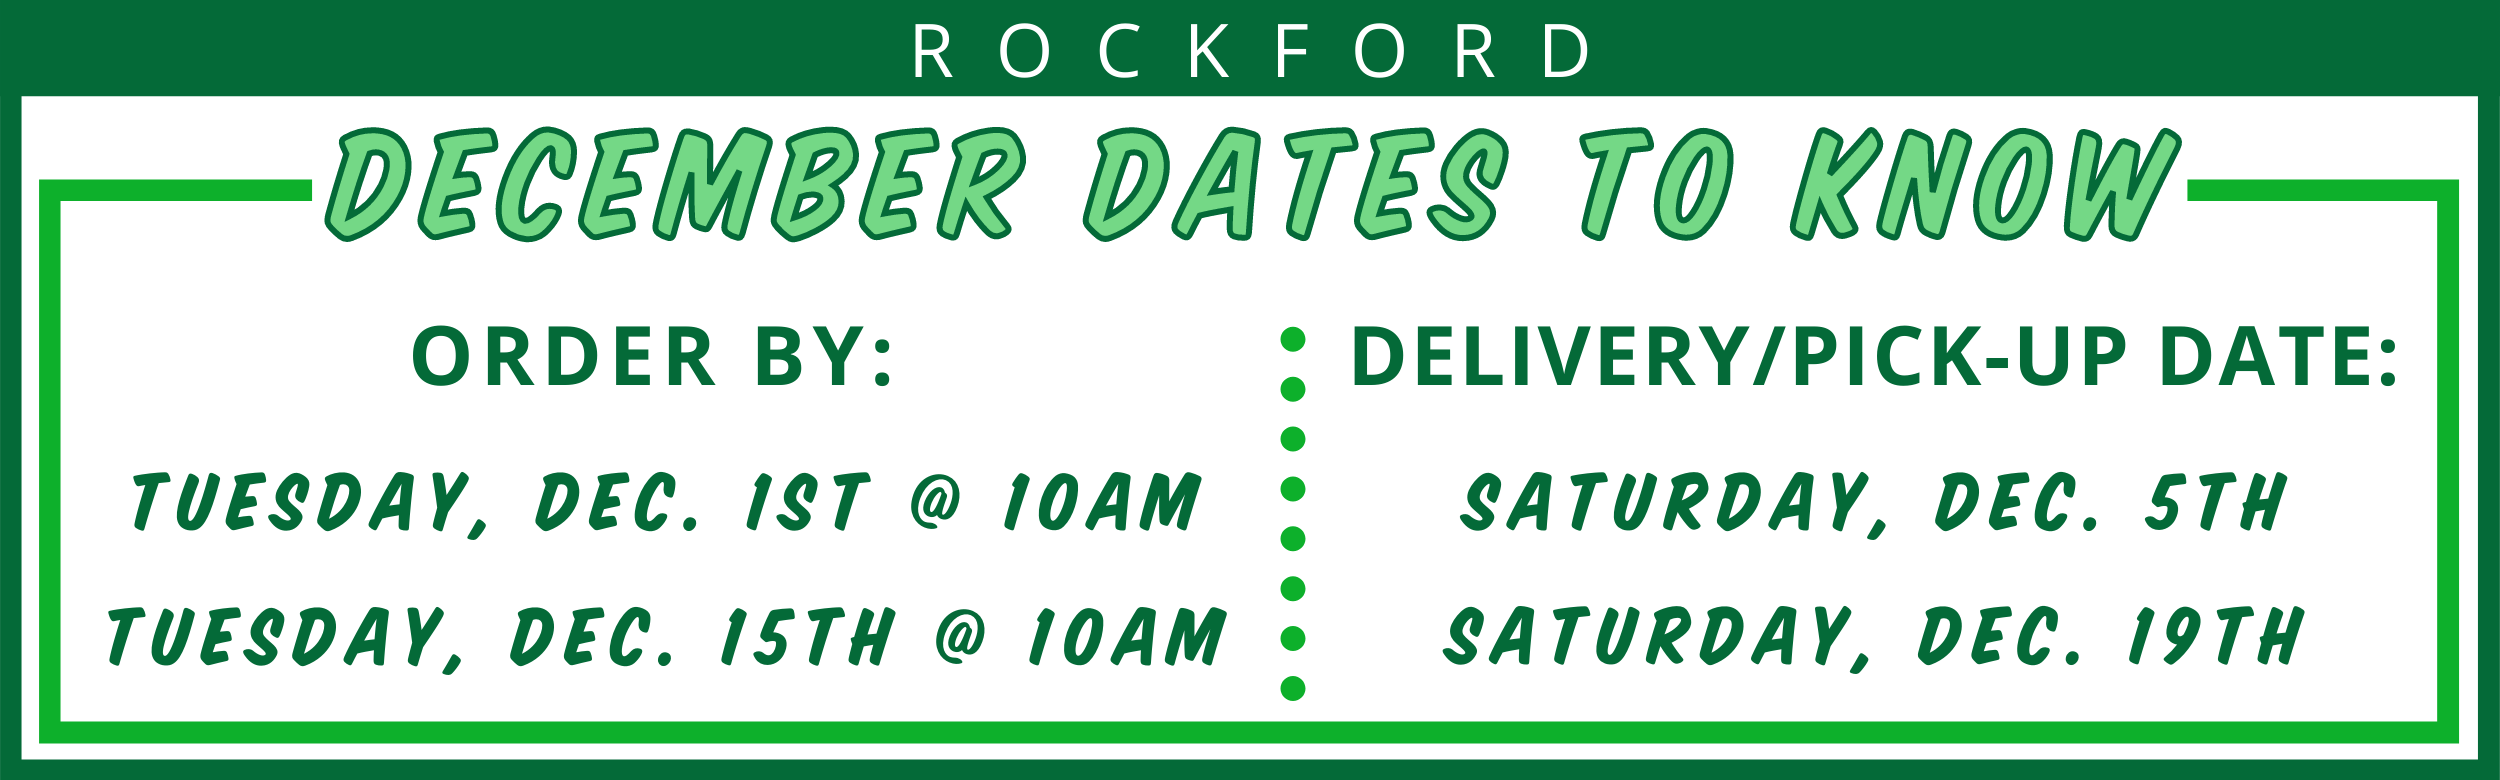 Rockford December Deliveries: Order by Tuesday, 12/1 at 10AM for Delivery on Saturday, 12/5; OR Order by Tuesday, 12/15 for delivery on Saturday, 12/19